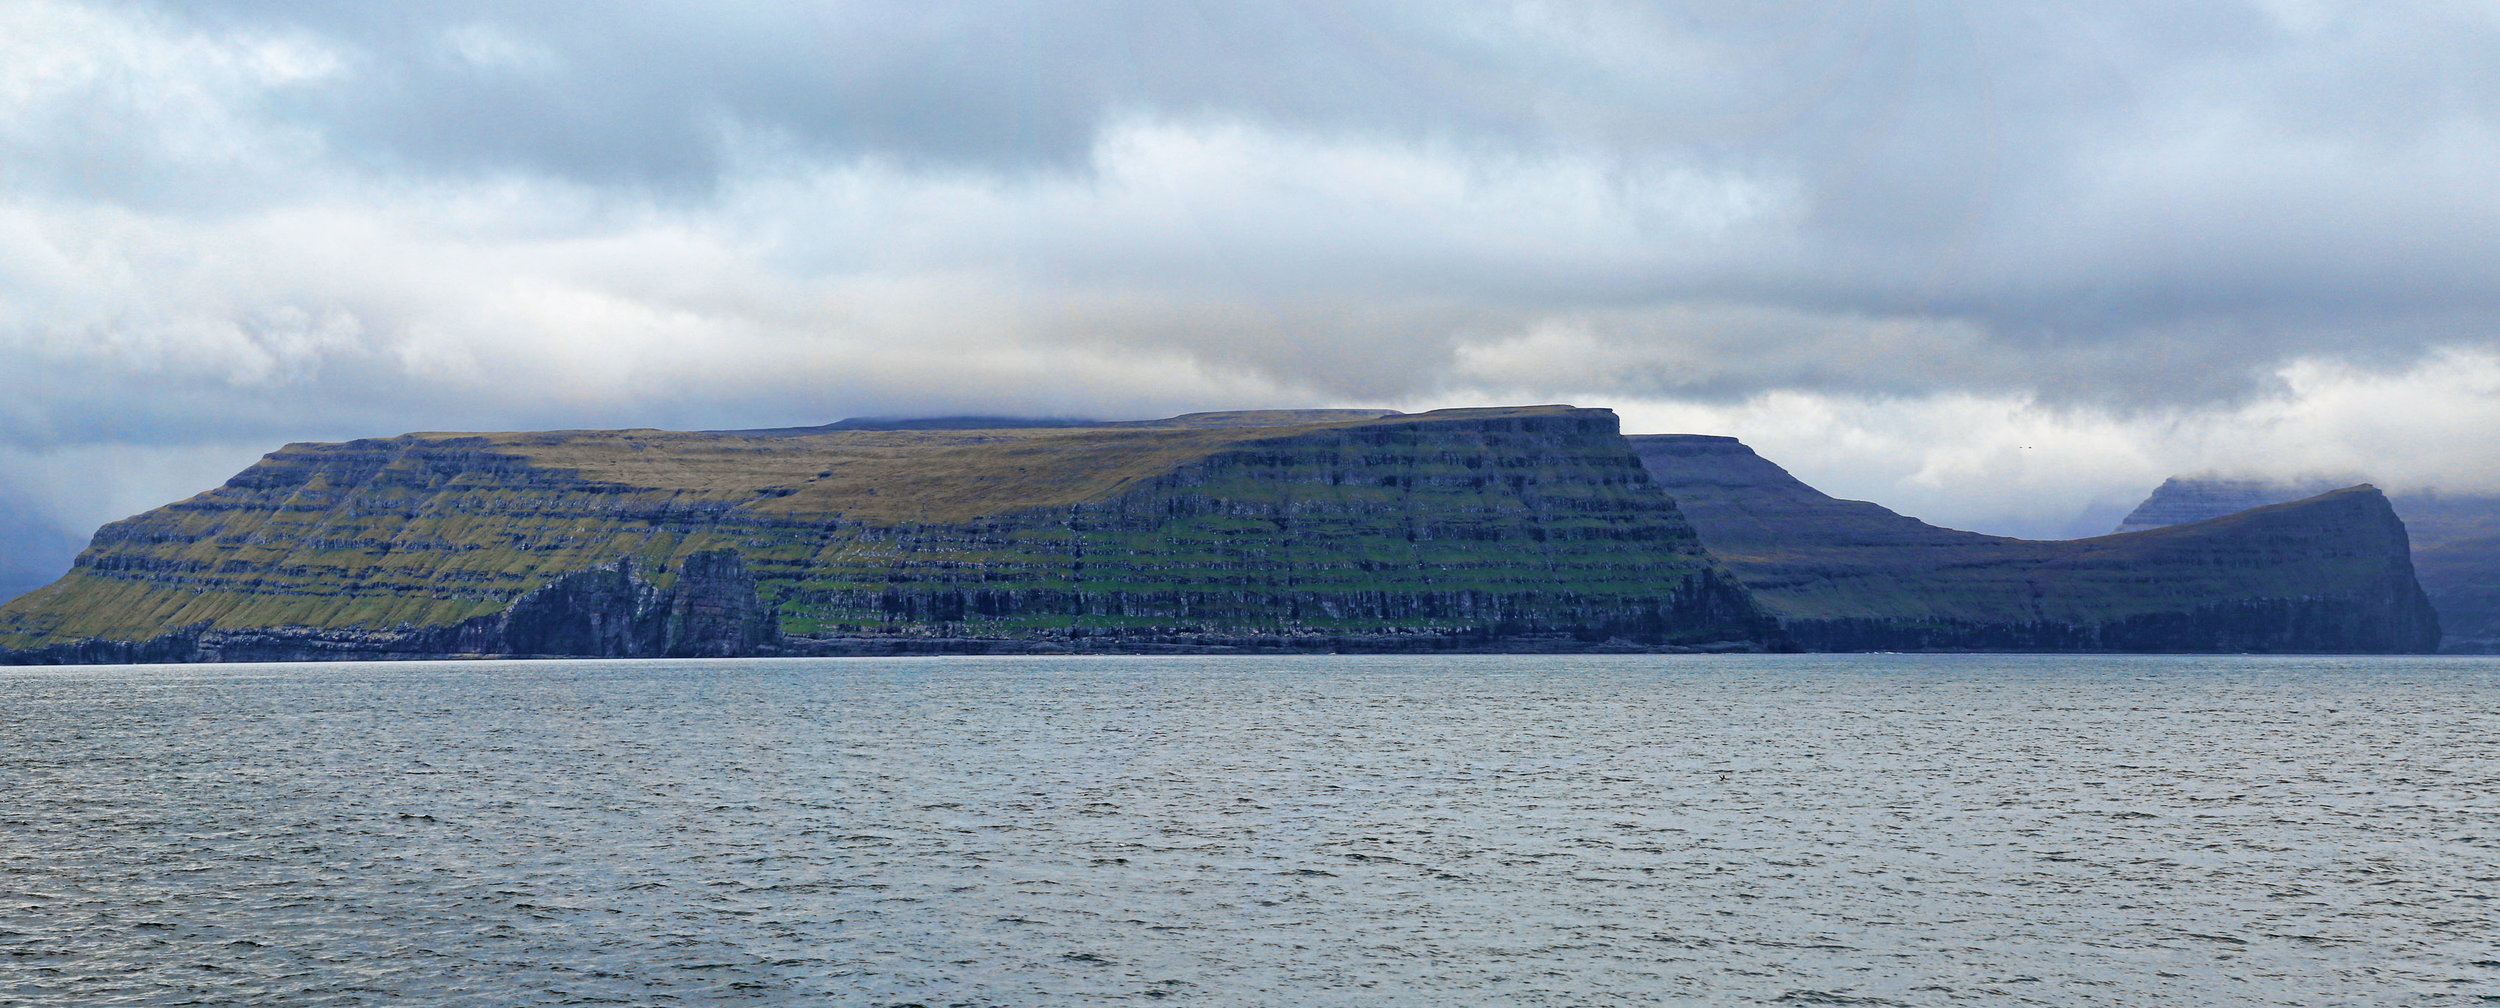 The Faroe Islands are a pile of Paleogene-age basalts, deeply cut by magnificent fjords.